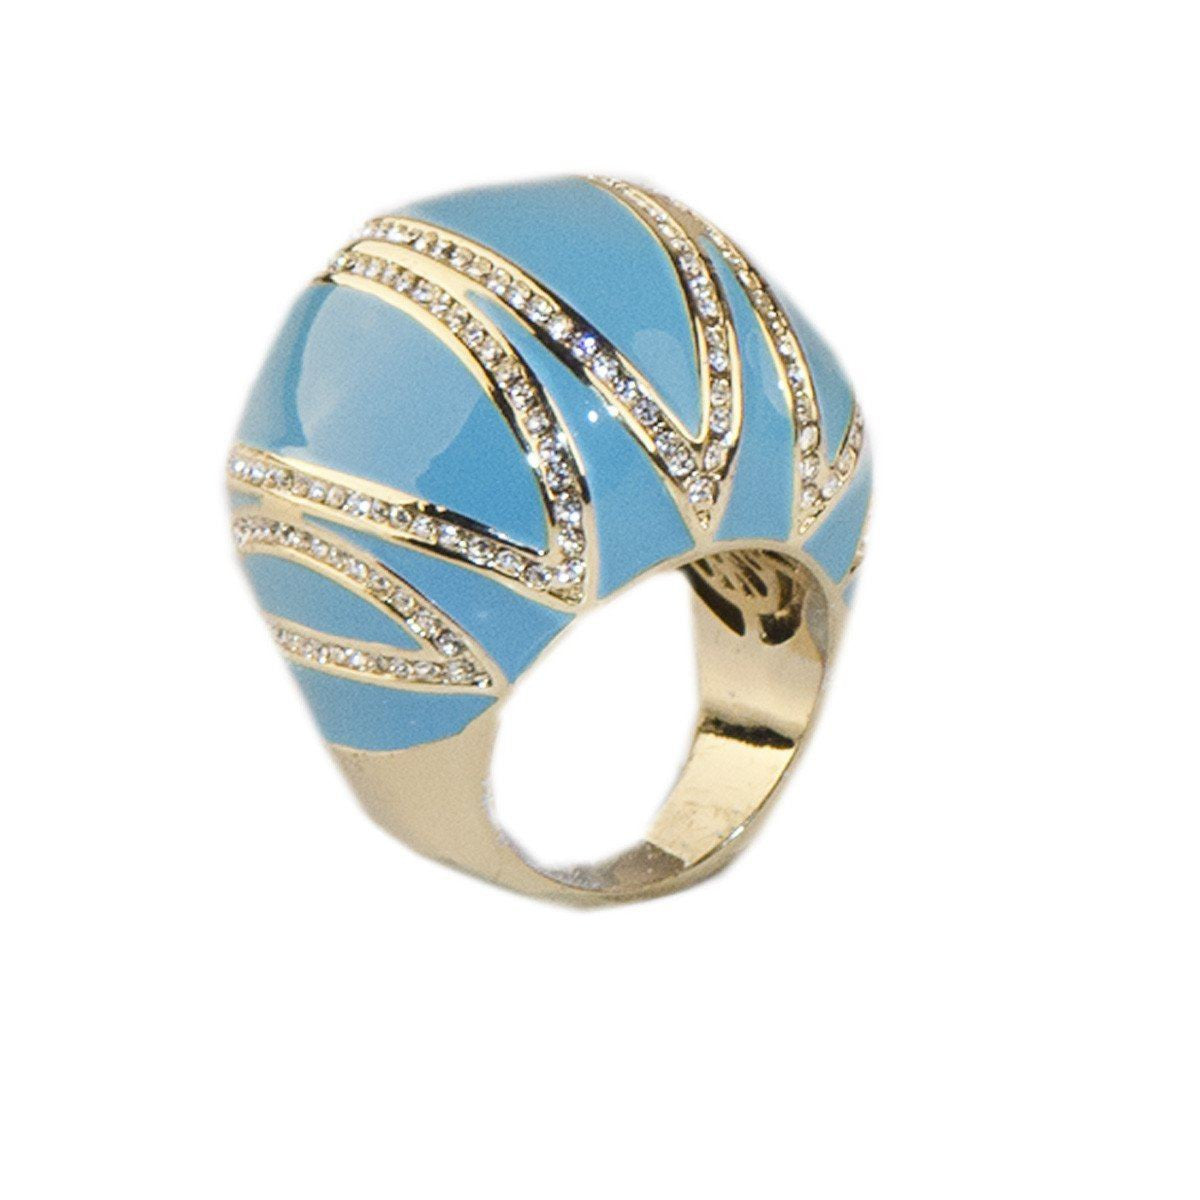 Joan Boyce Bubble Ring 3, Turquoise Blue Enamel & Crystals, Ring, Size 6